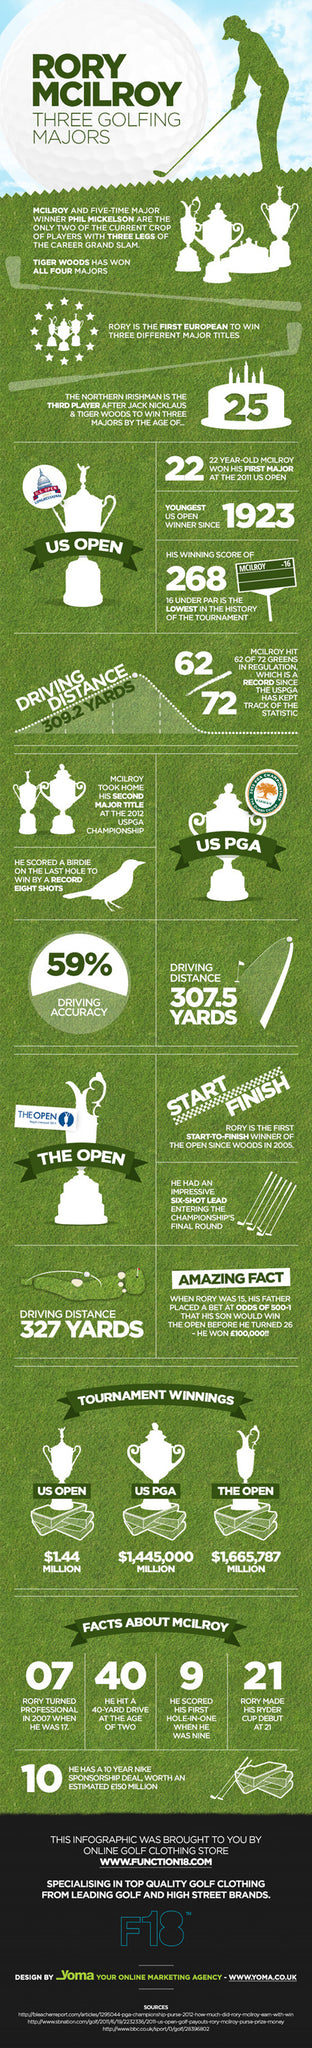 The Rory McIlroy Infographic - Open Champion 2014